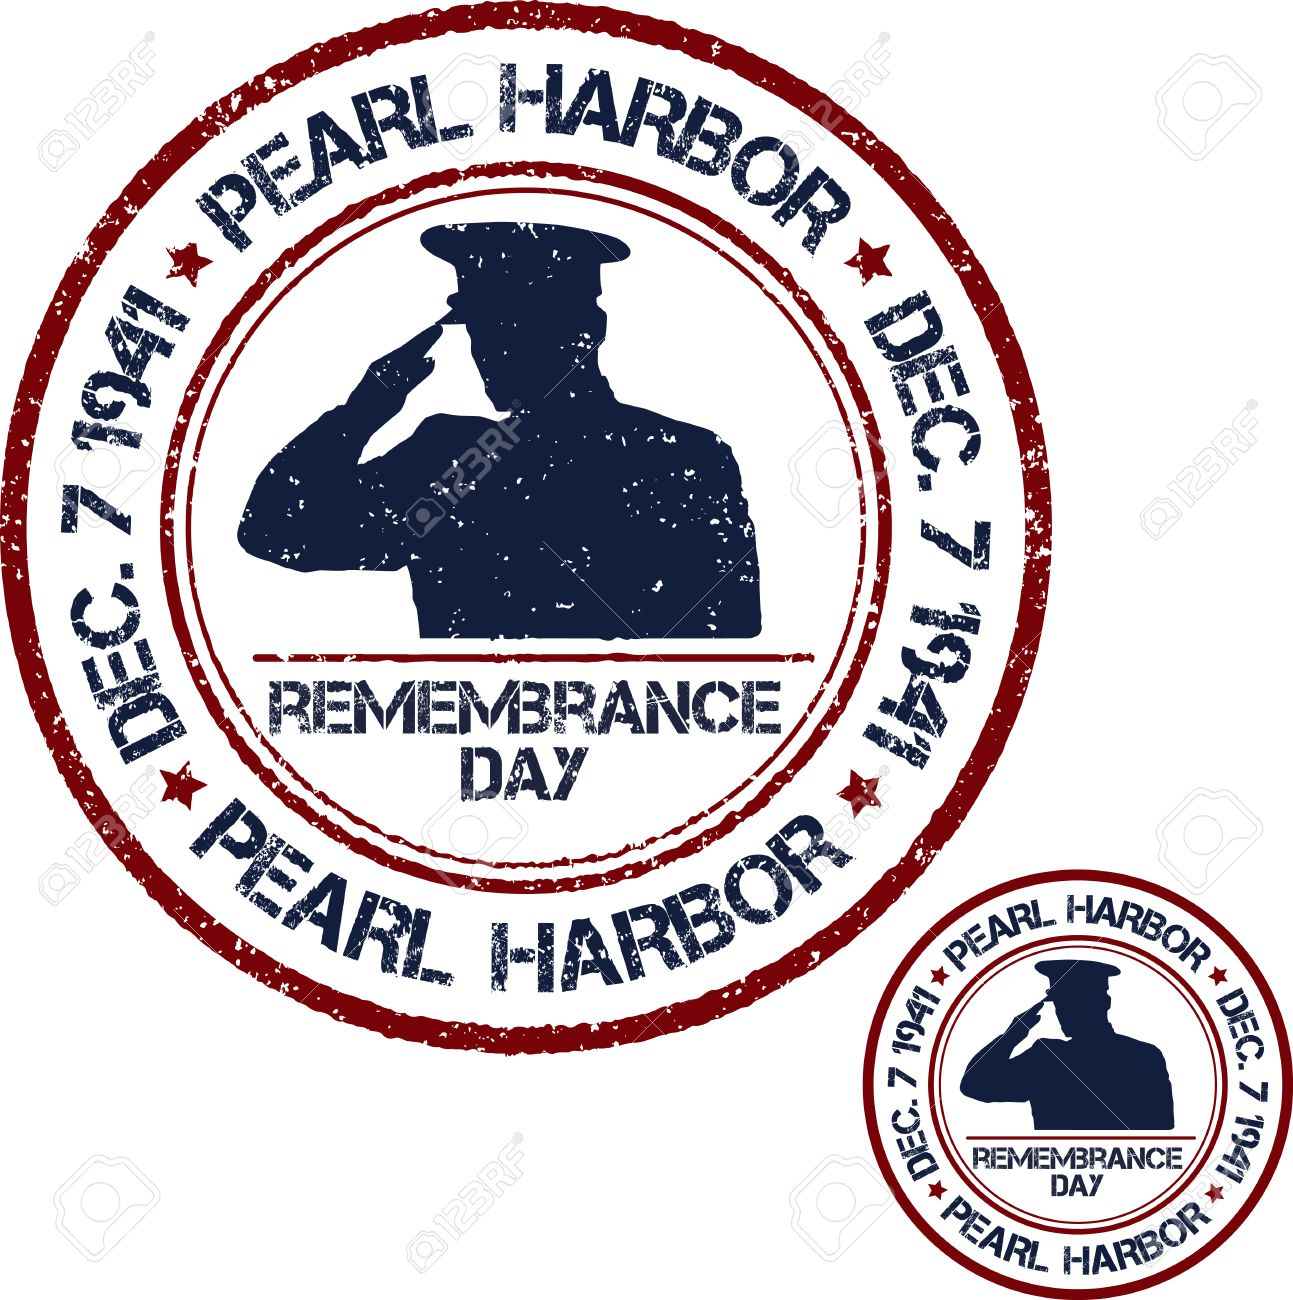 Pearl Harbor. Remembrance day. Vector illustration Patriotic stamps Stock Vector - 49409361